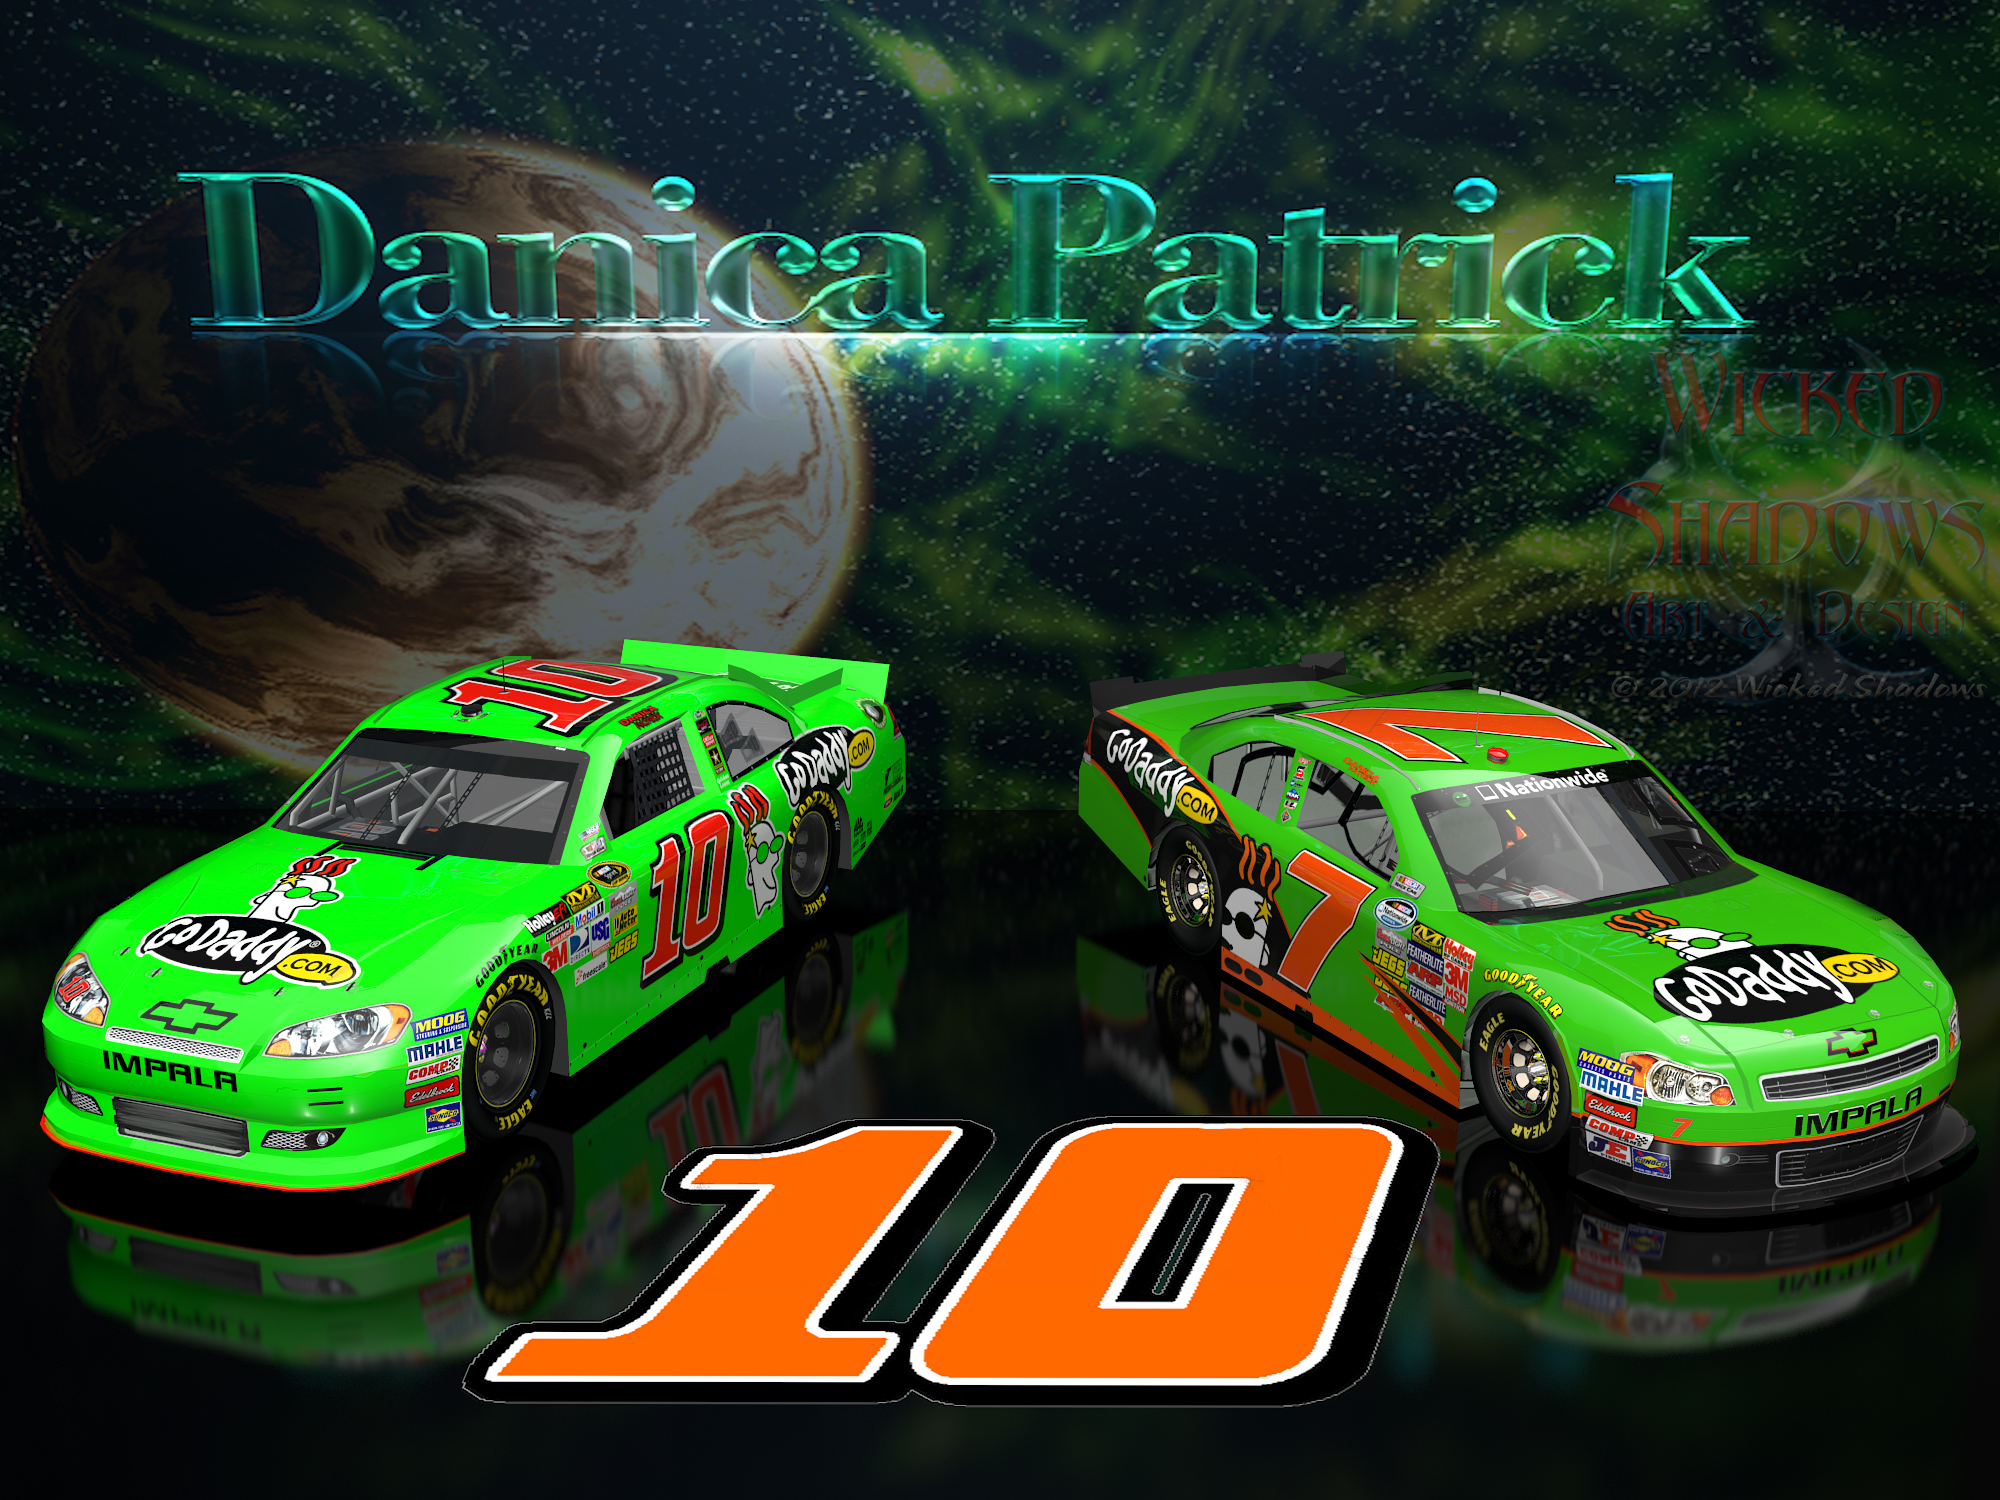 Wallpapers By Wicked Shadows Danica Patrick Dale: Wallpapers By Wicked Shadows: Danica Patrick NNS And Cup